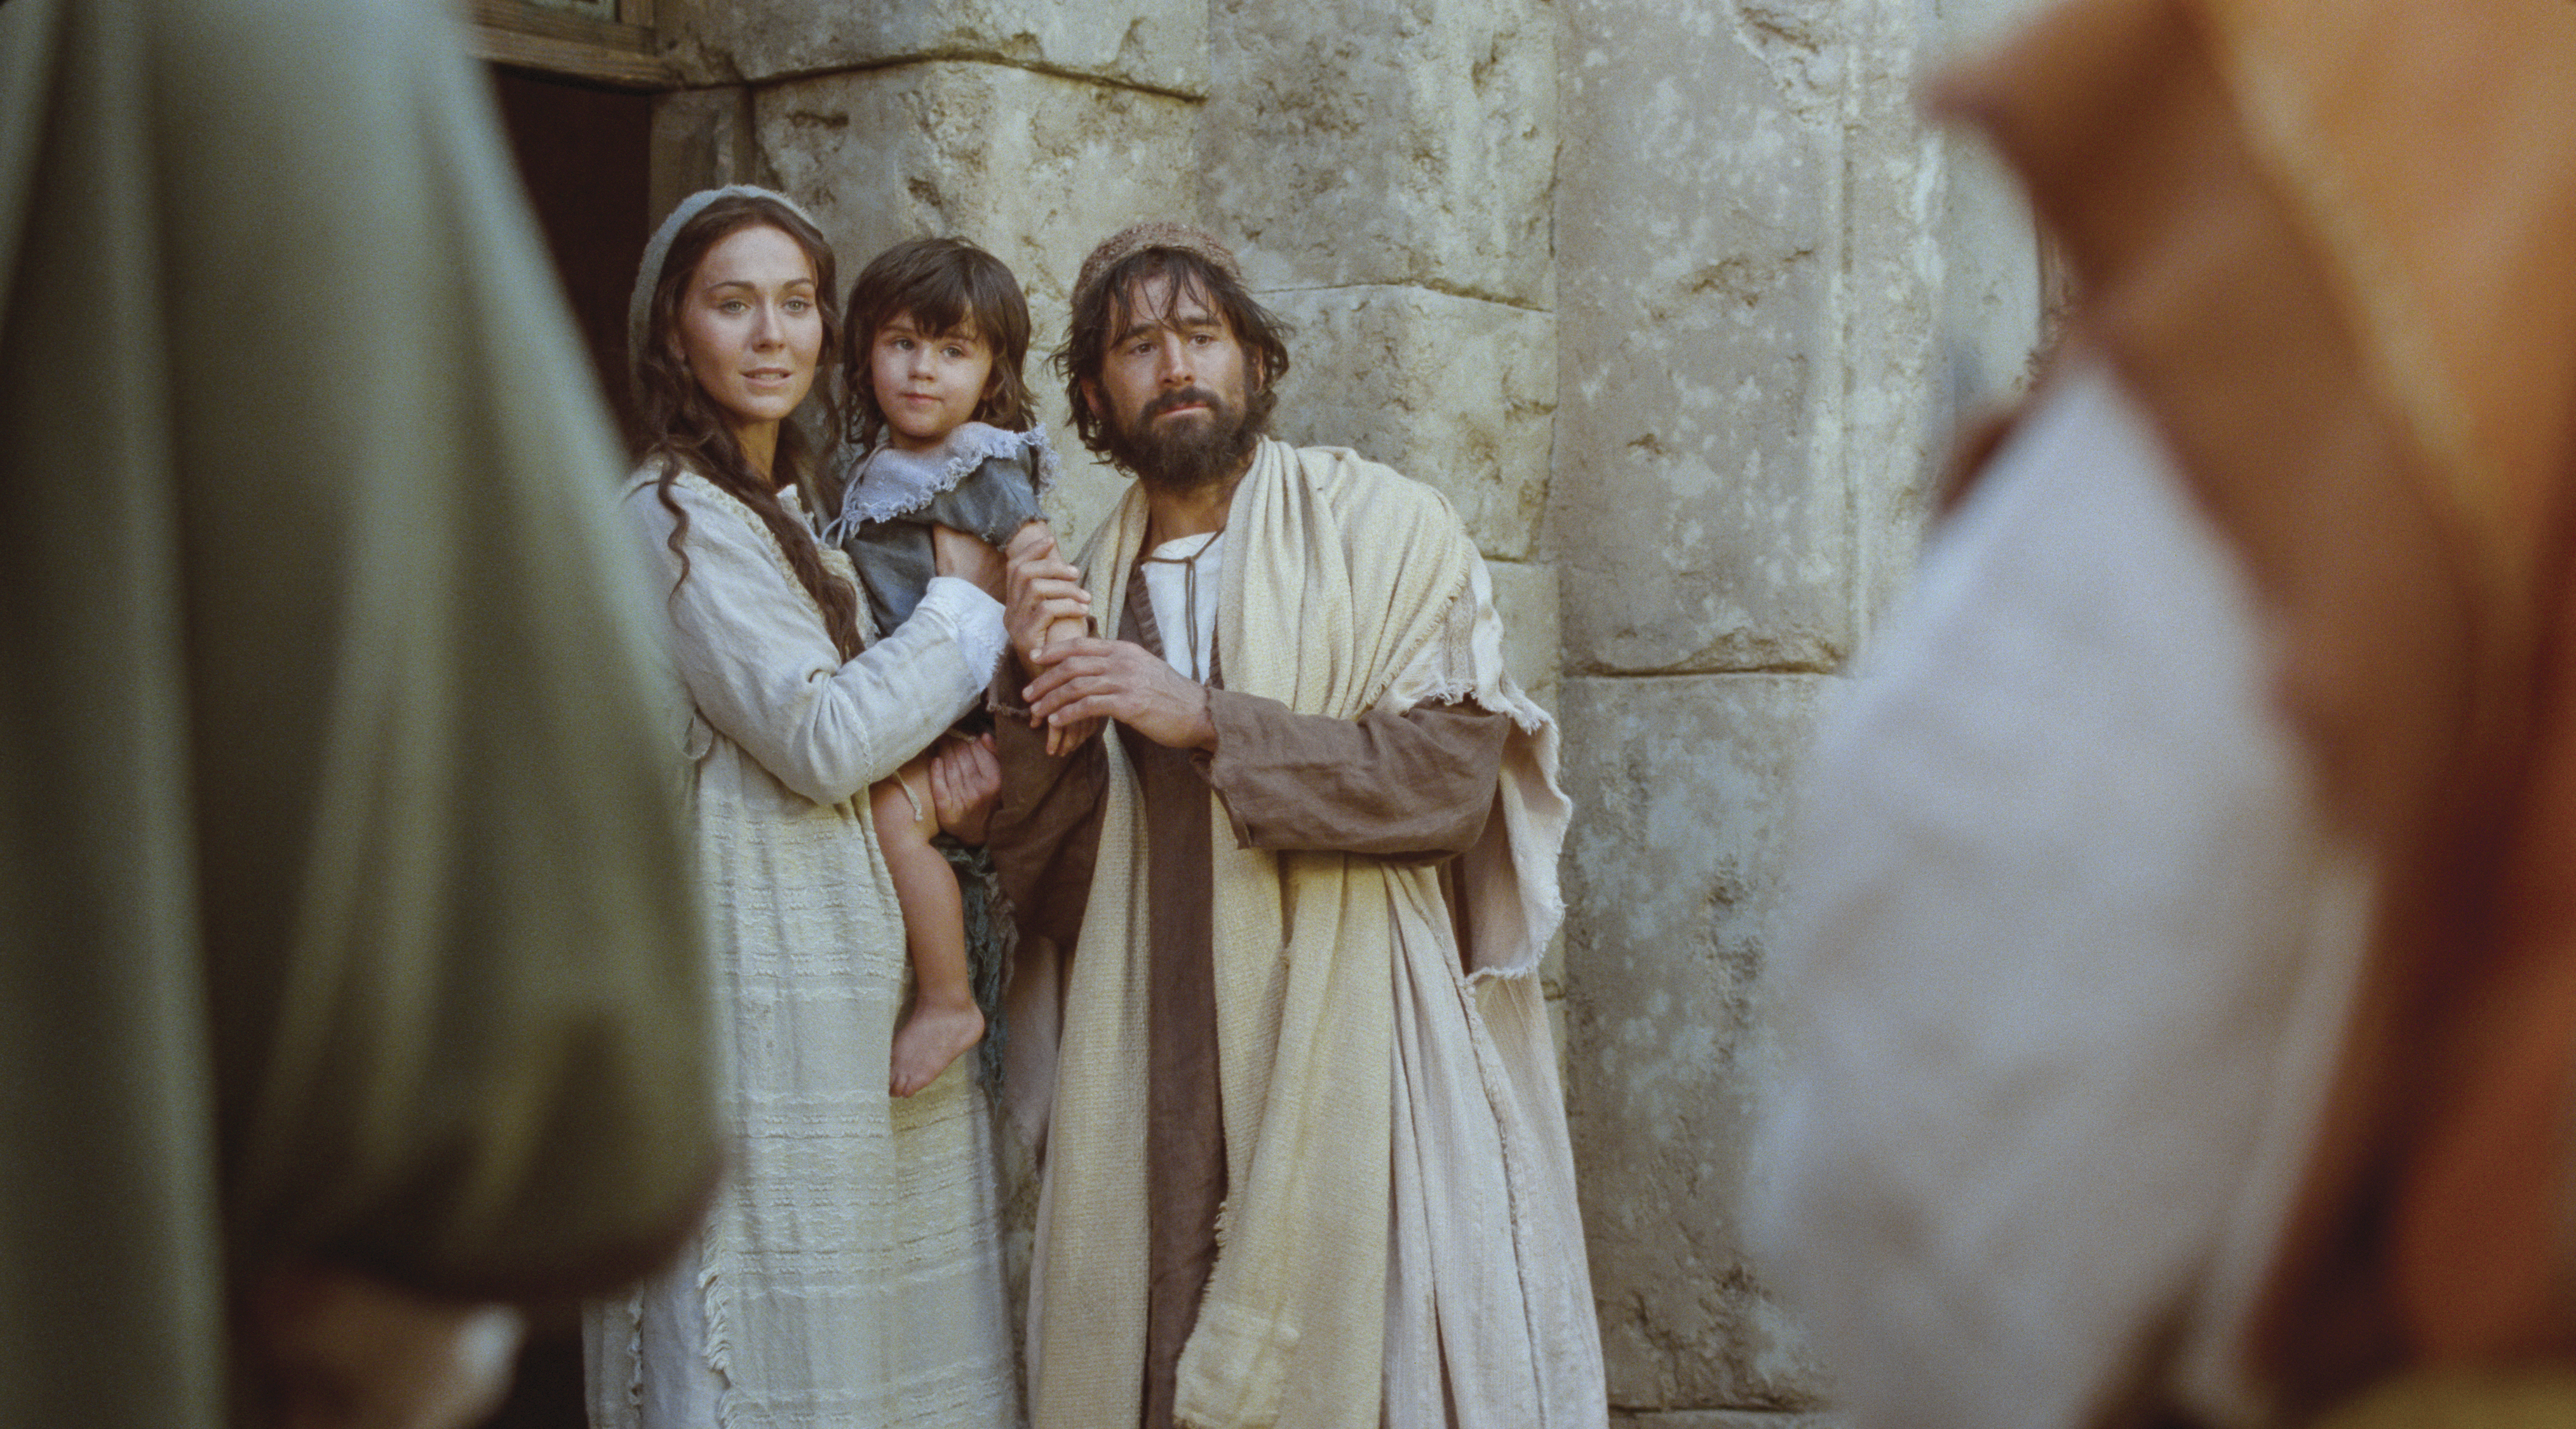 Mary and Joseph come out to see the Wise Men, who present gifts to Christ.